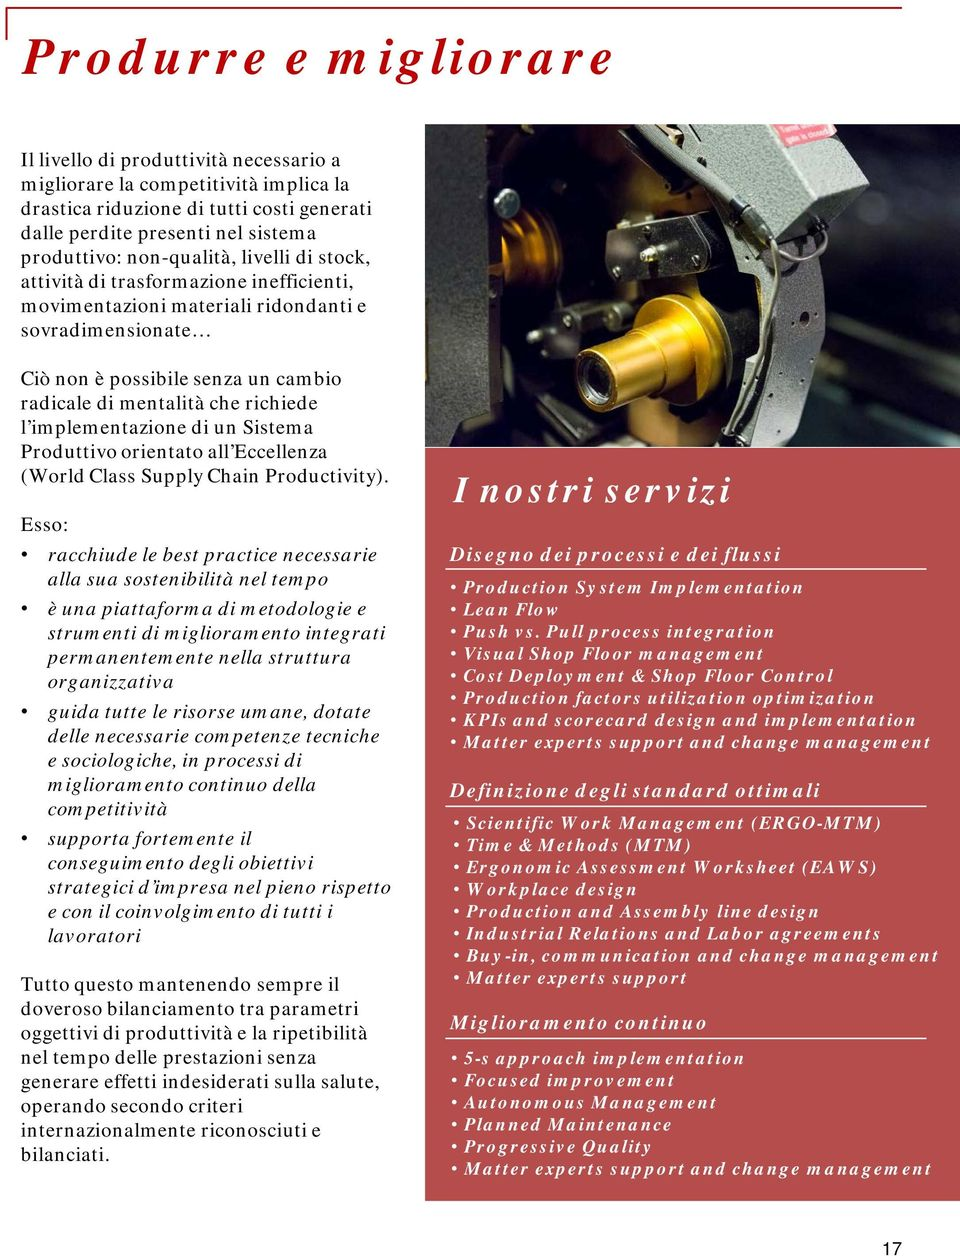 l implementazione di un Sistema Produttivo orientato all Eccellenza (World Class Supply Chain Productivity).